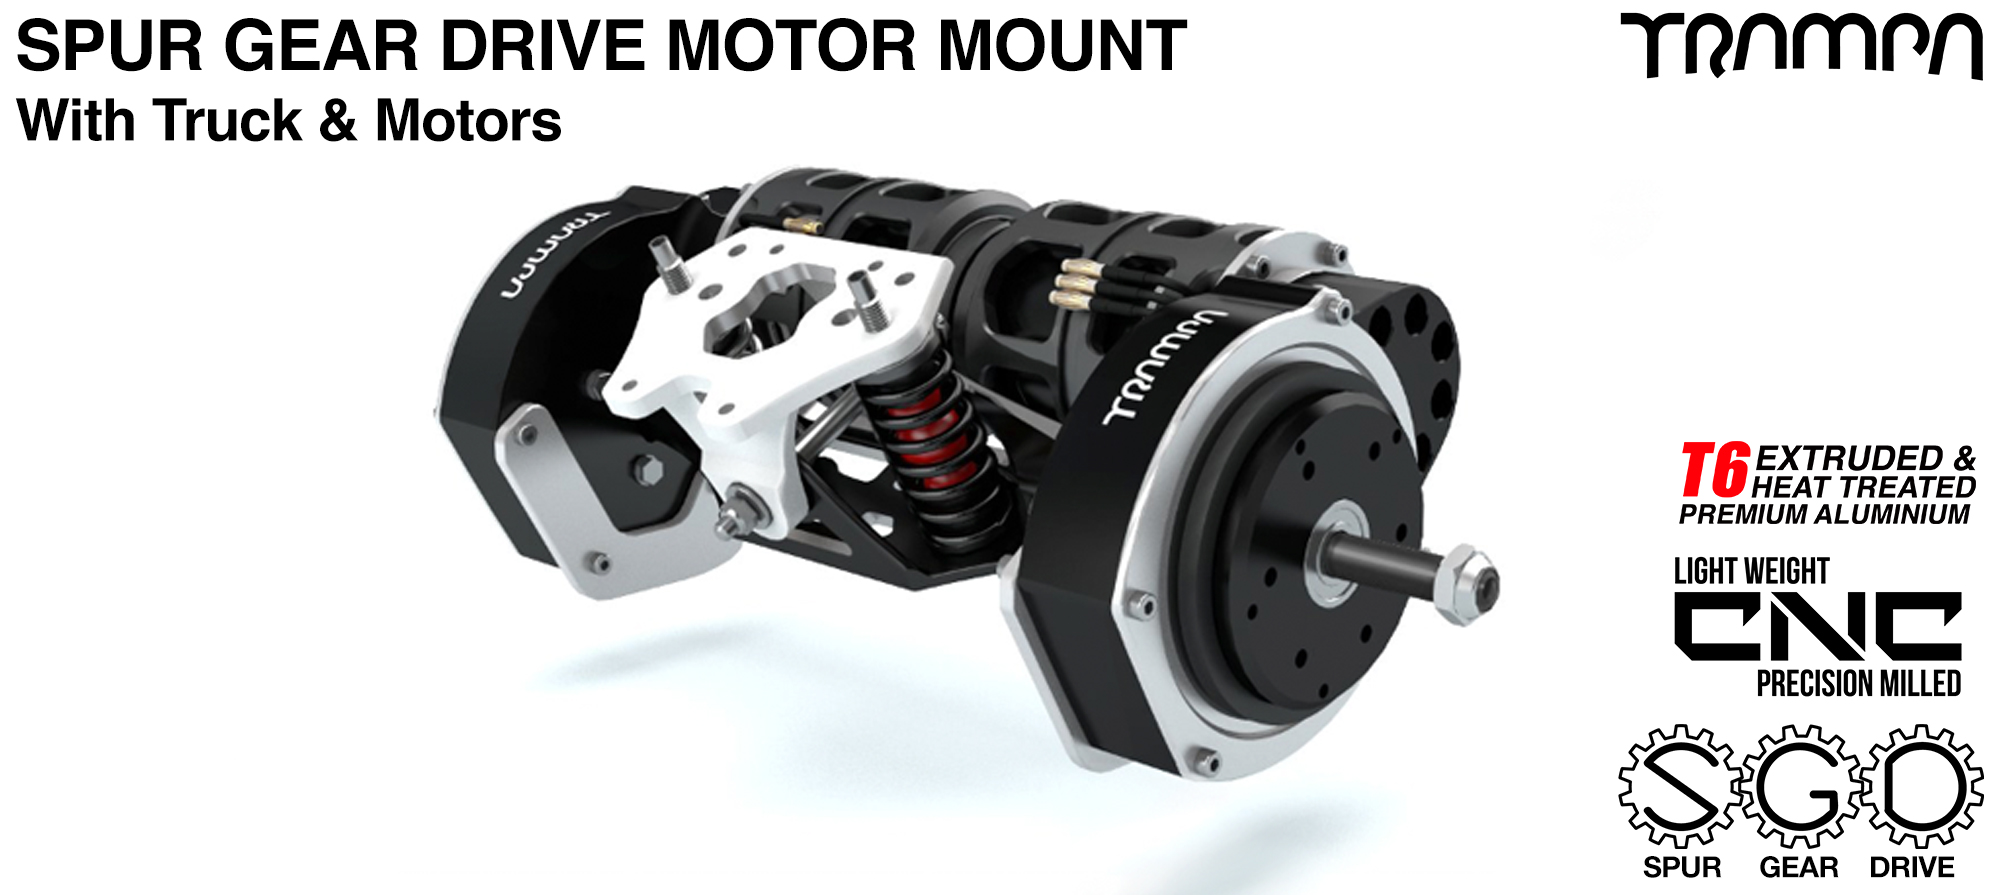 Mountainboard Spur Gear Drive TWIN Motor Mounts with Motors & Truck